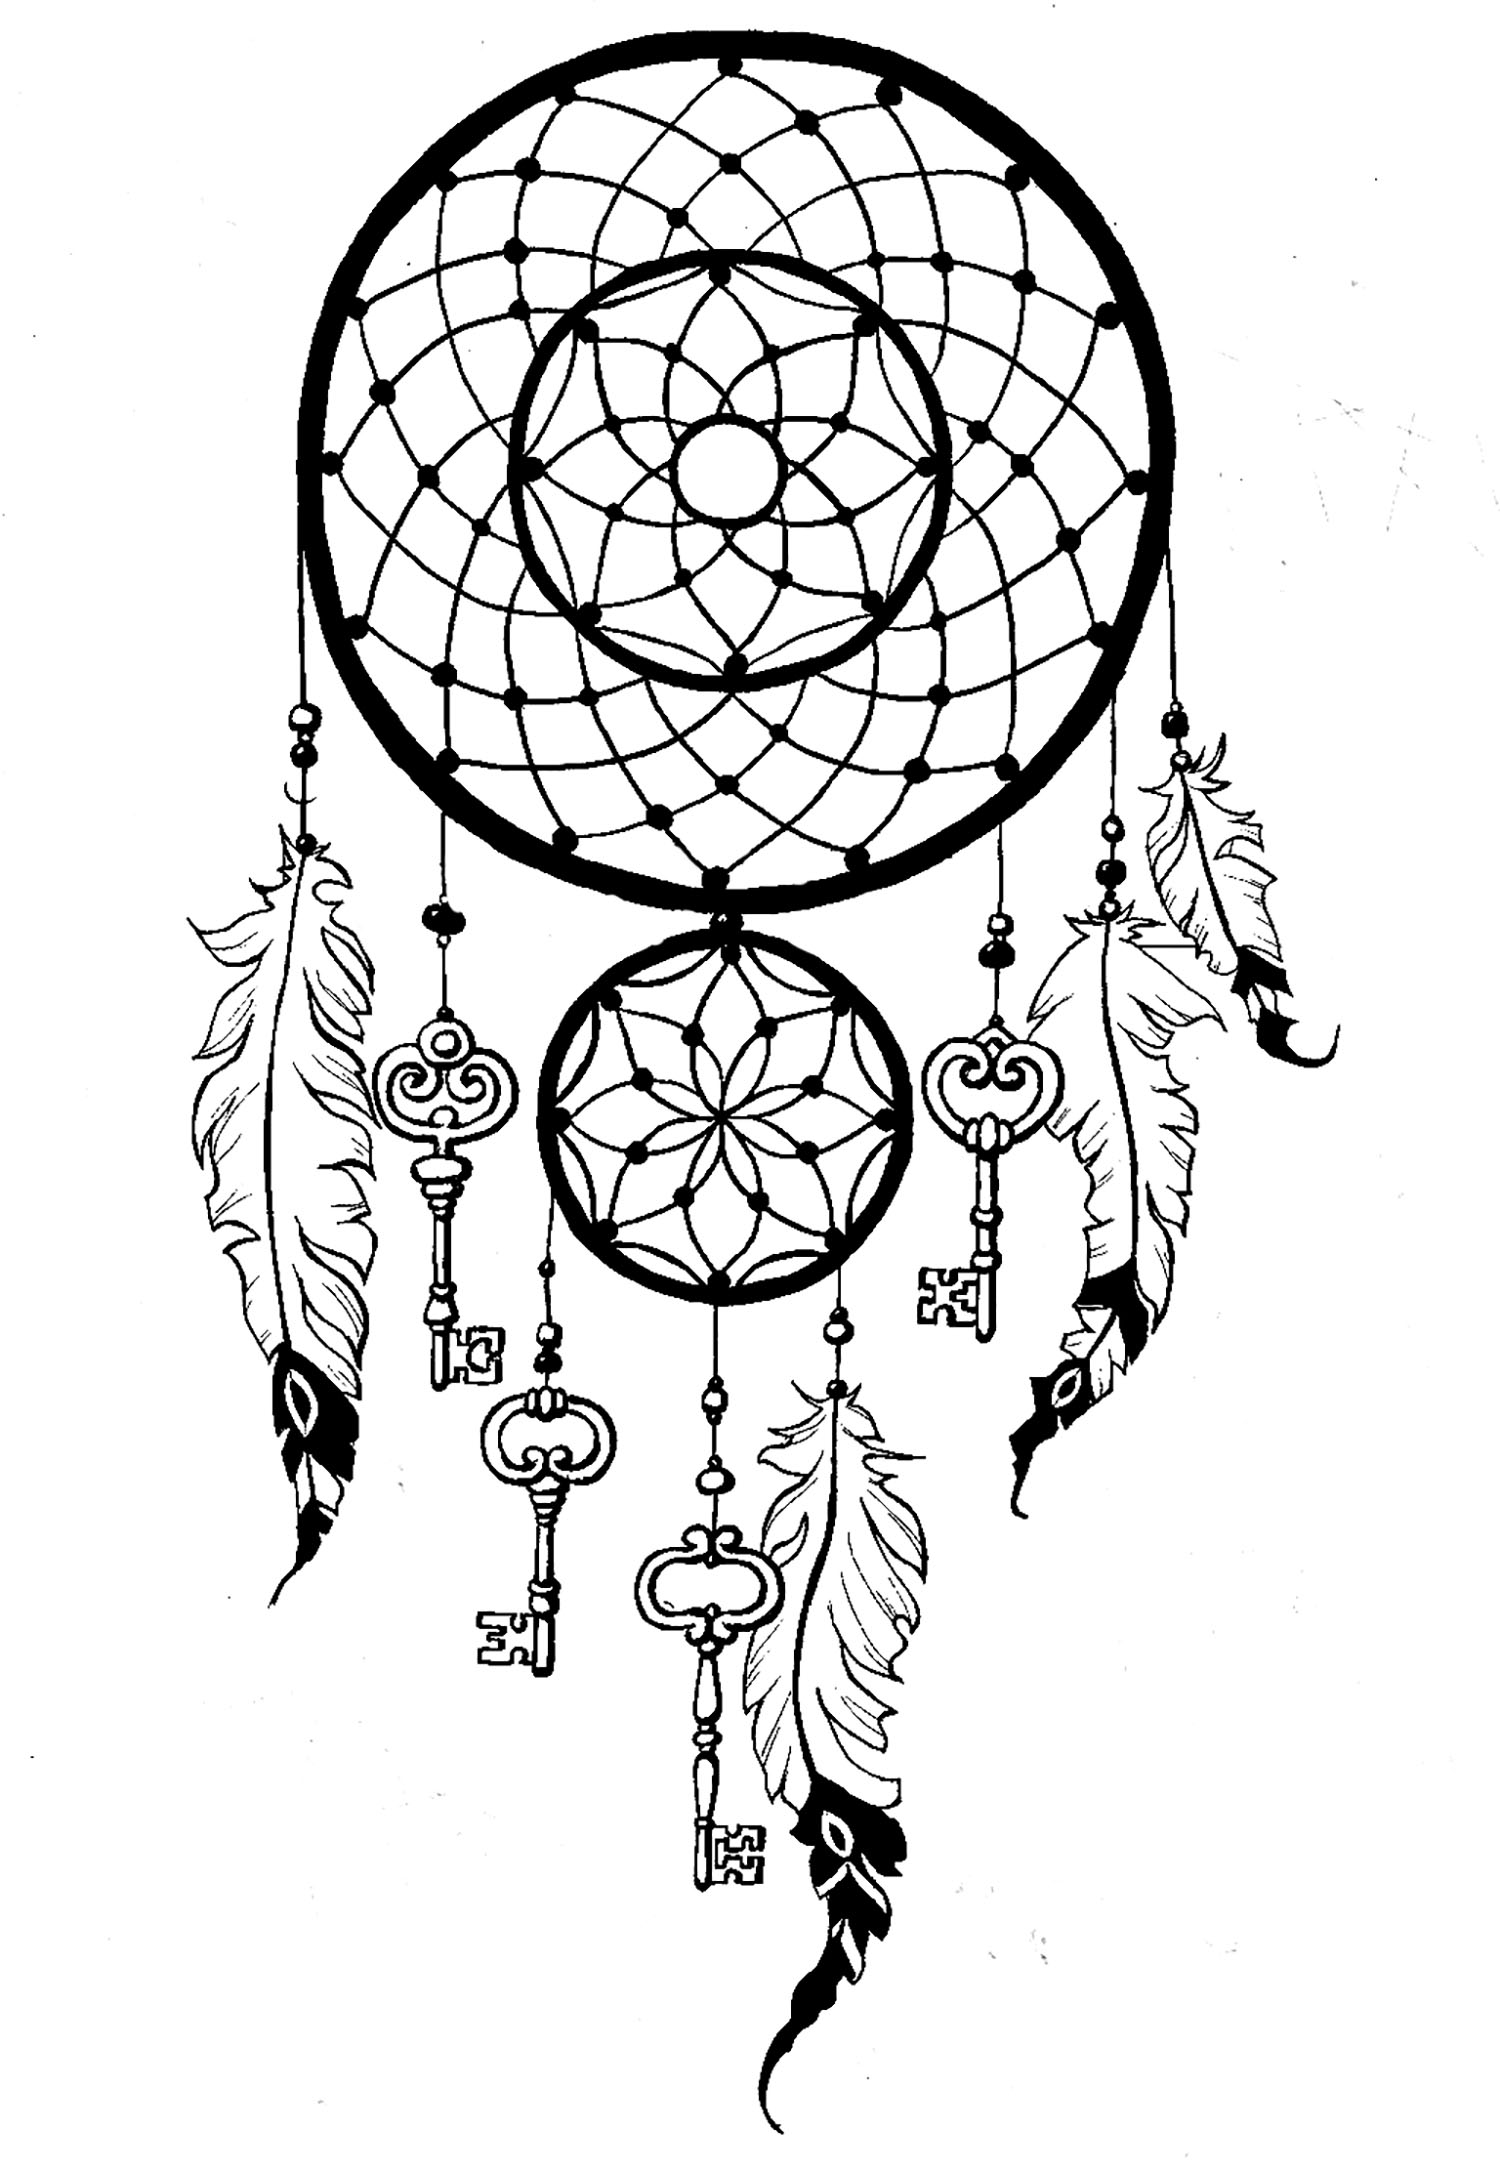 Dreamcatcher keys Dreamcatchers